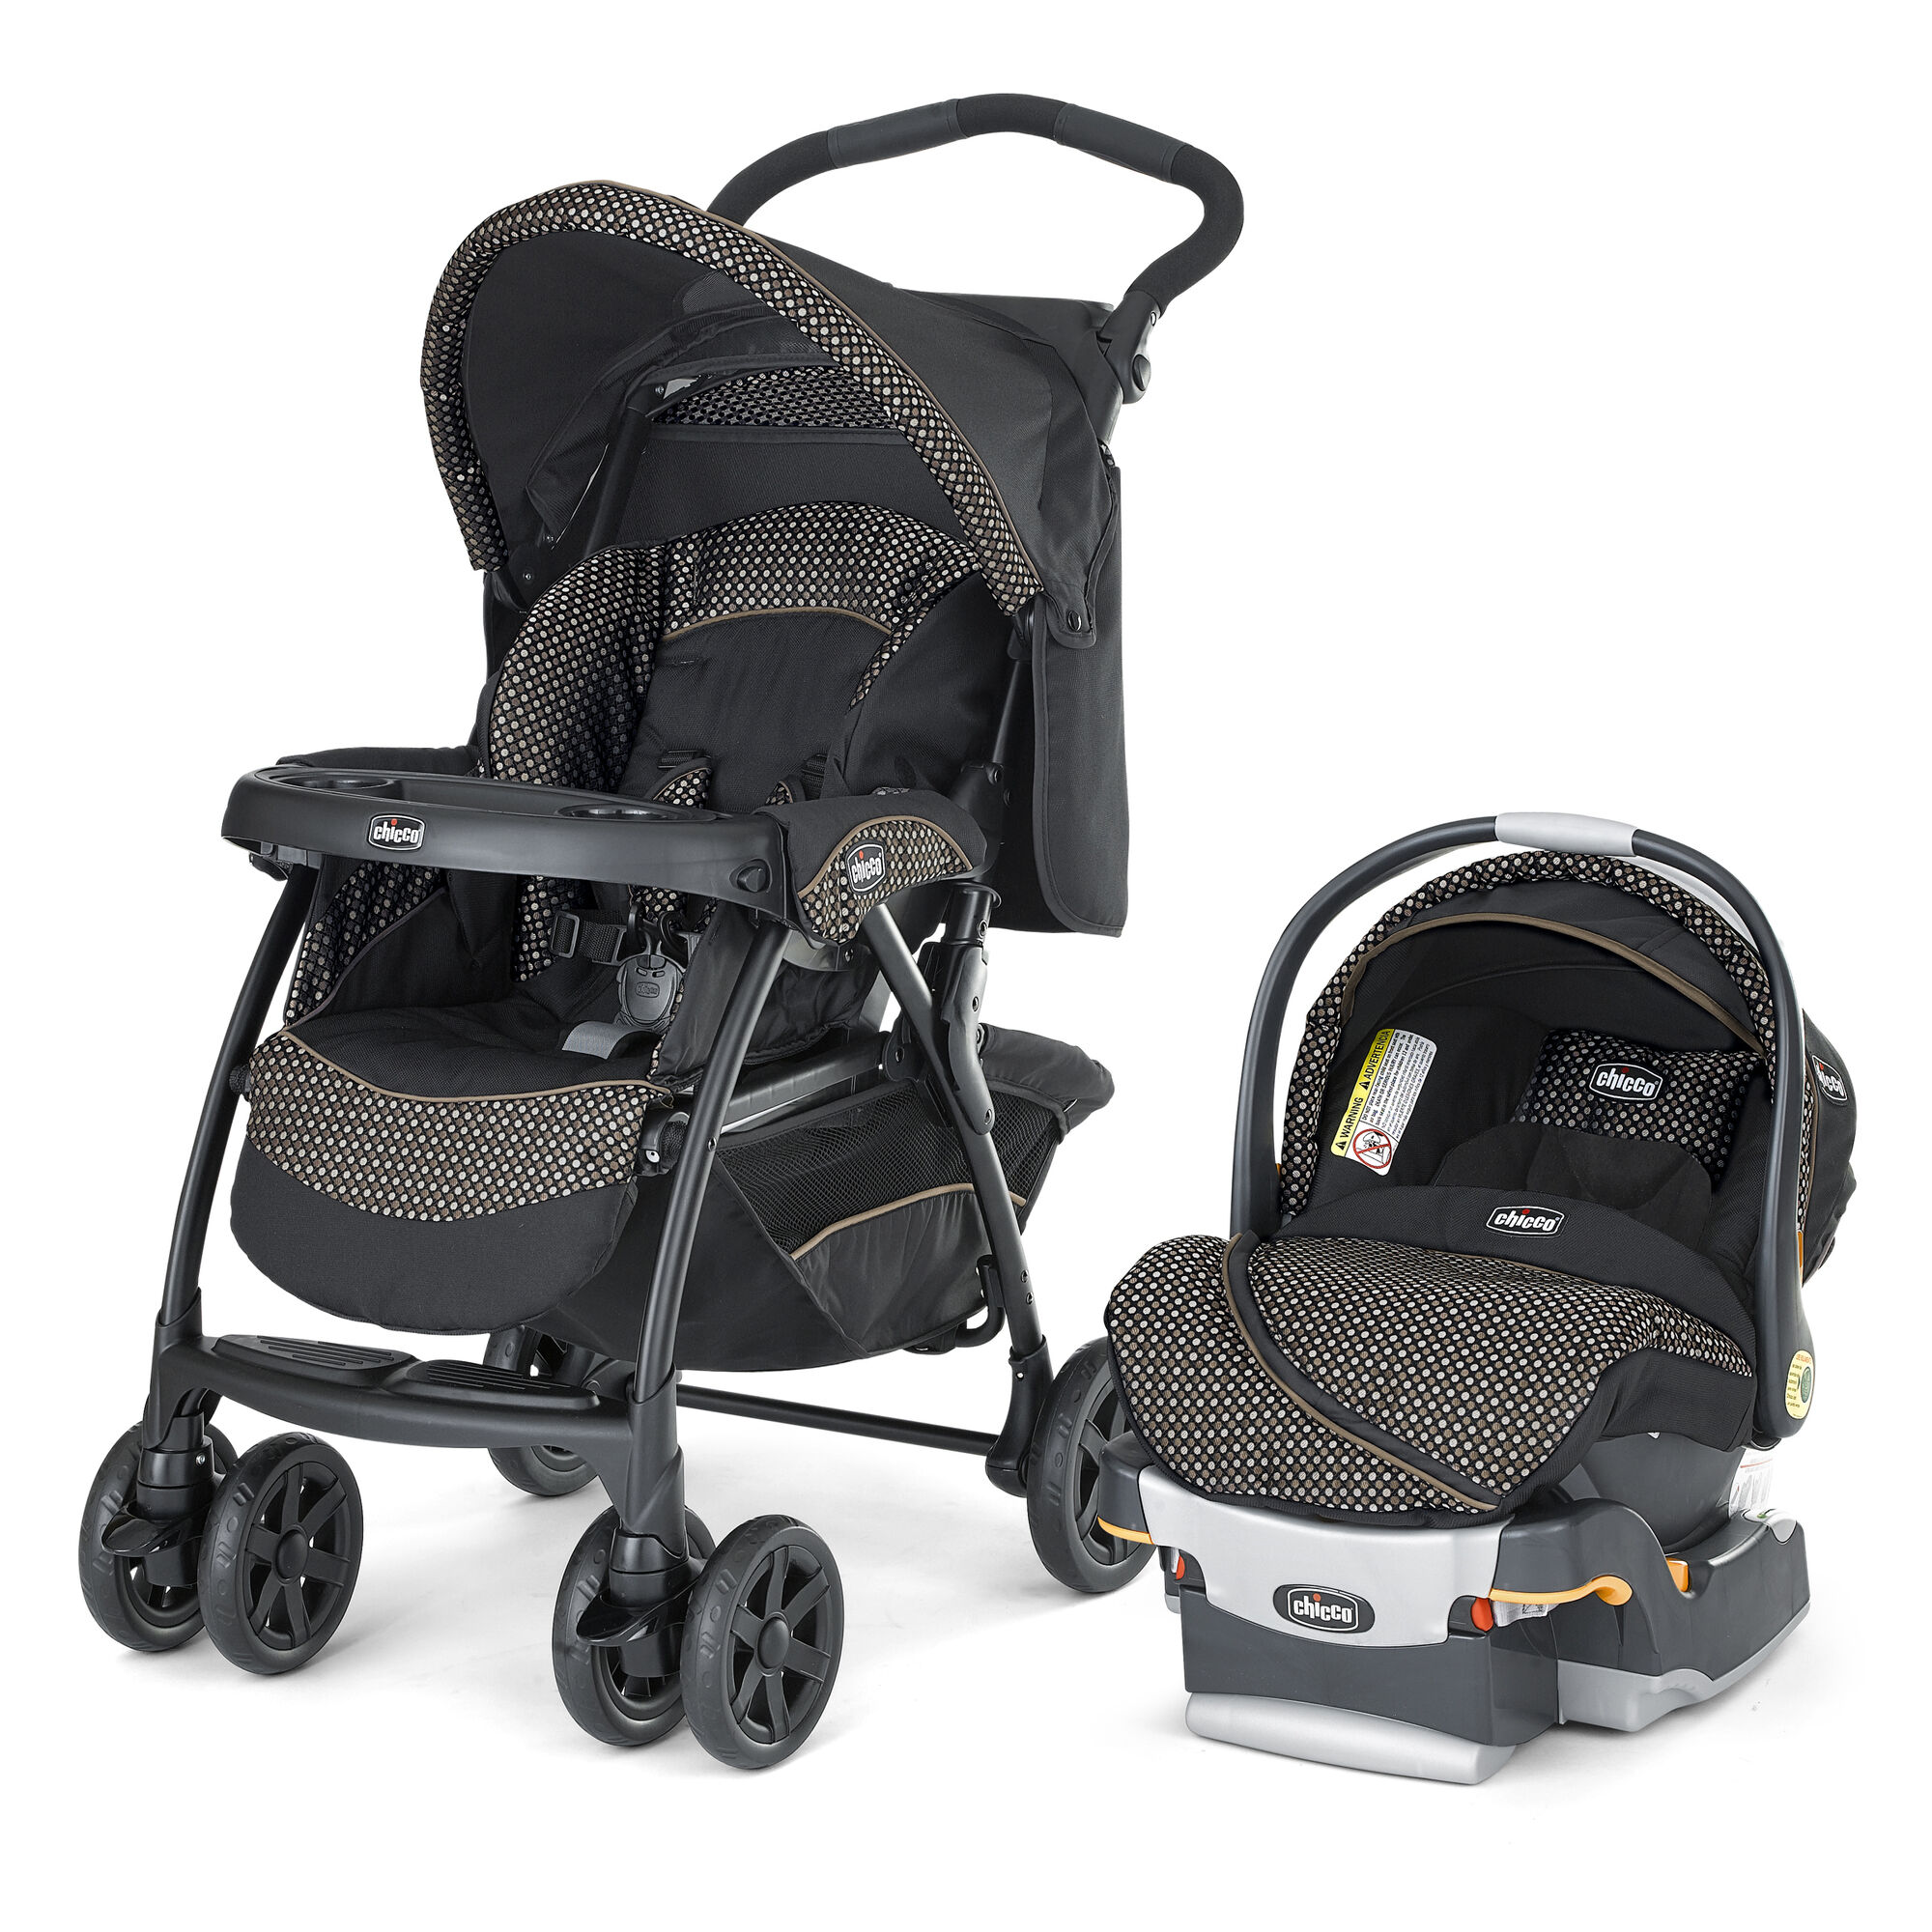 Chicco Cortina Le Travel System